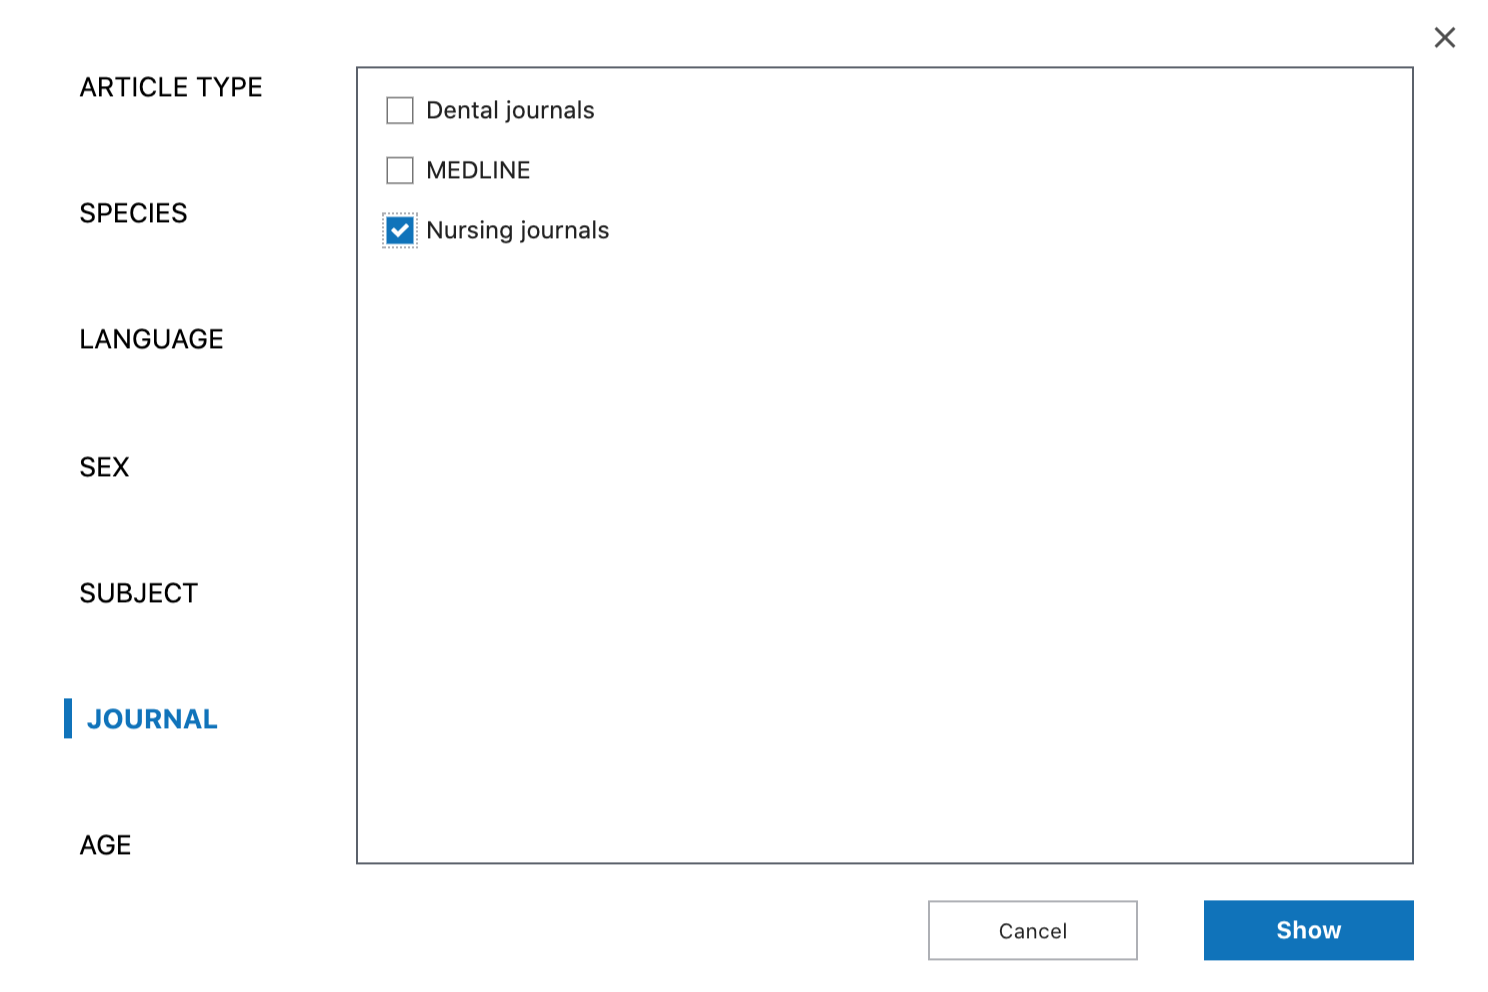 Adding Nursing journals to the visible filters